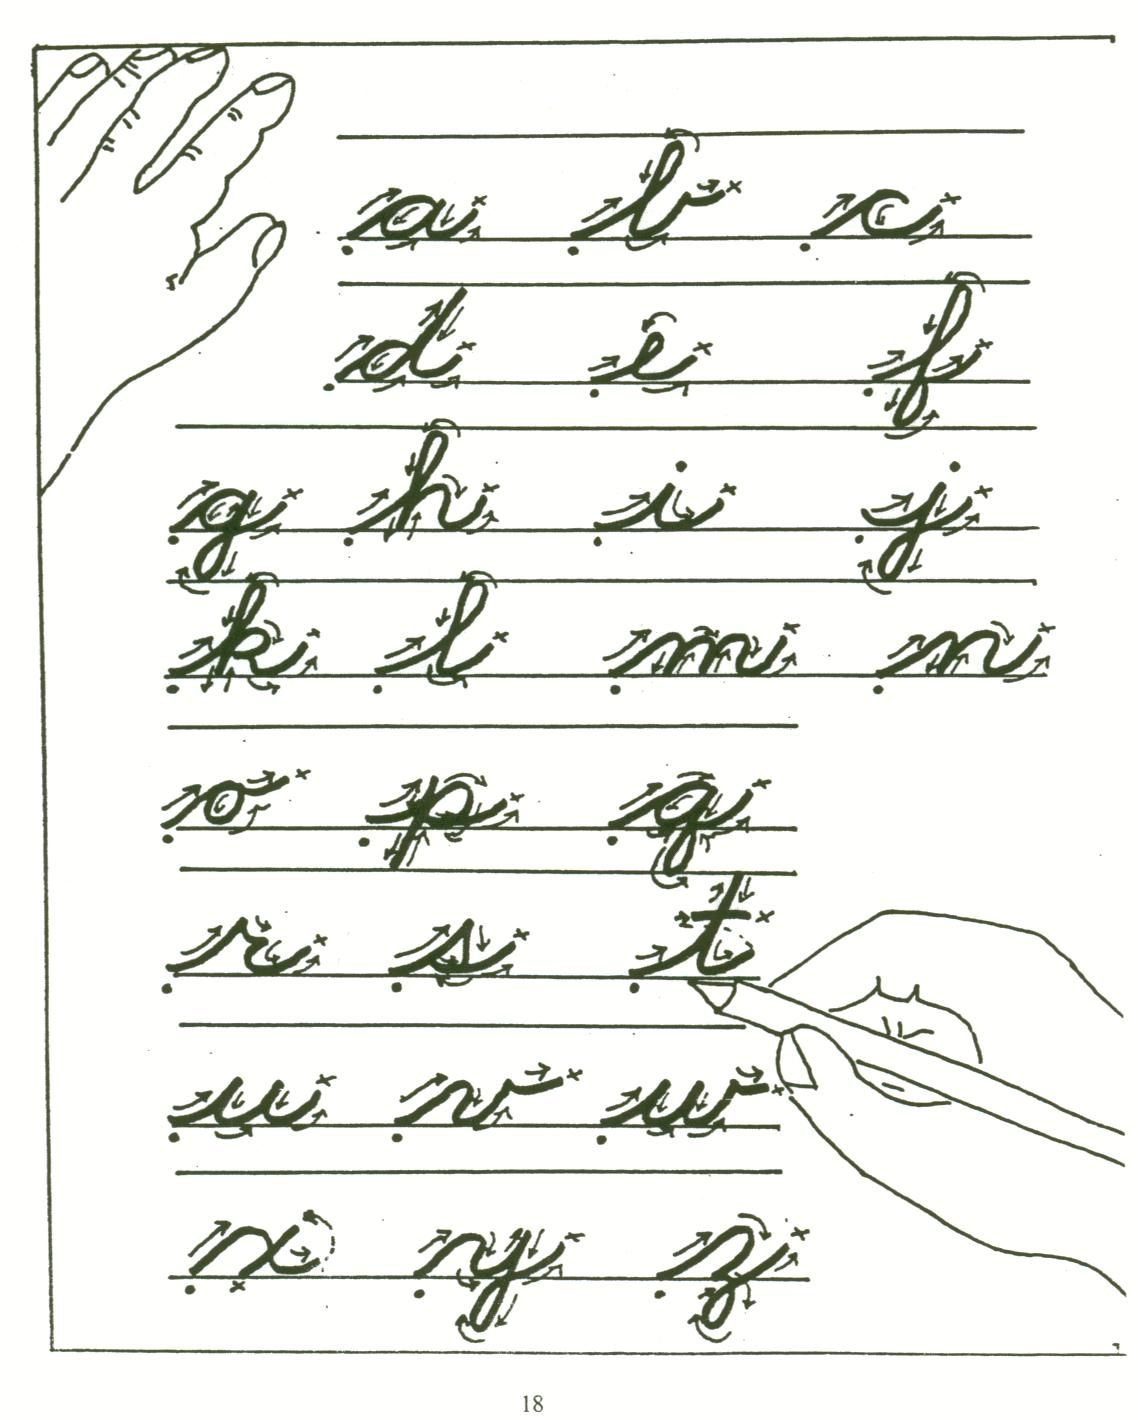 Practice Cursive Writing